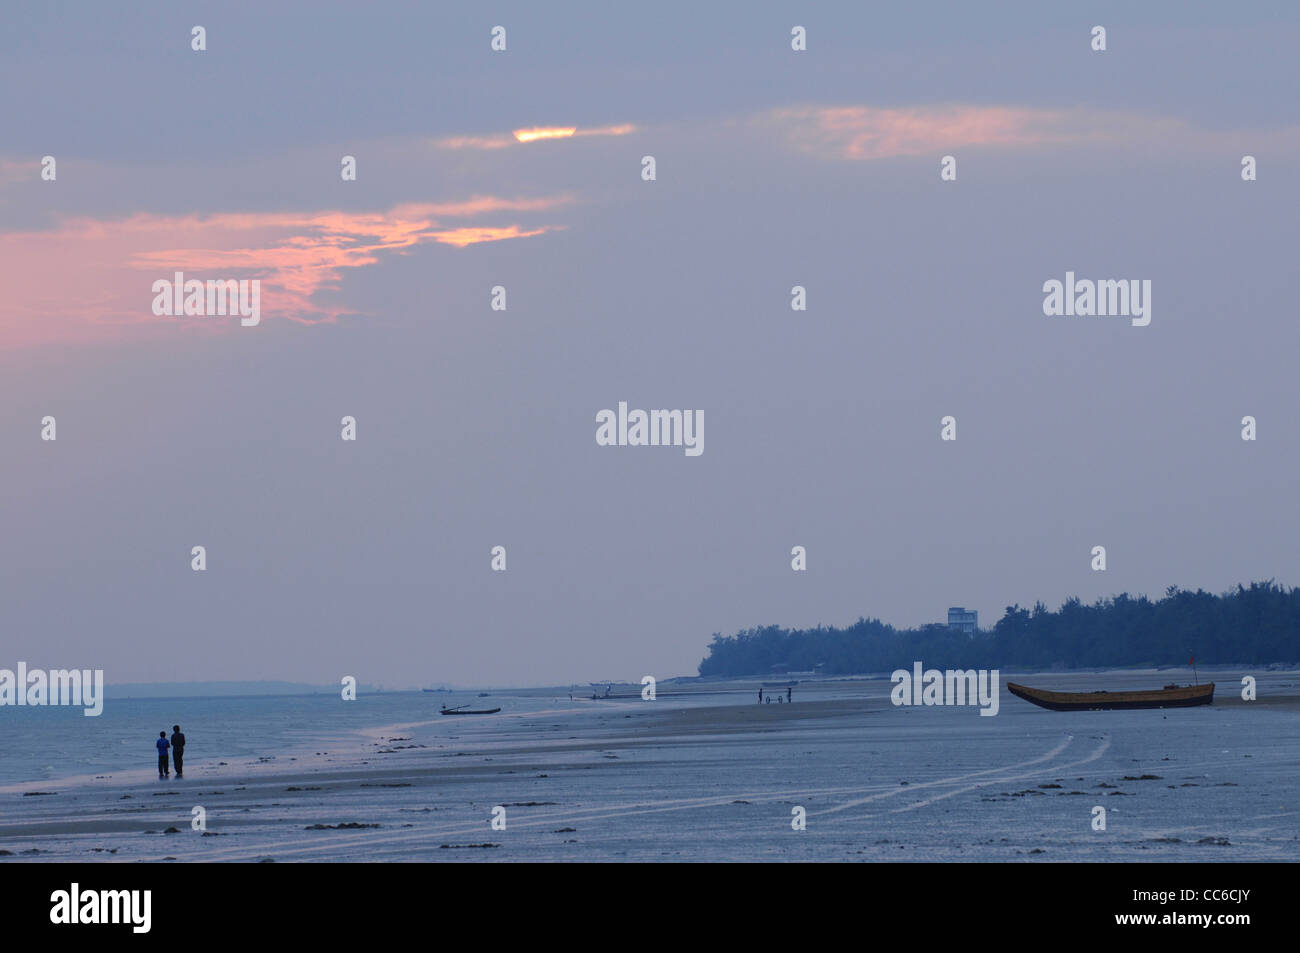 Sandybeach, Three Islands of Jing, Fangchenggang, Guangxi , China - Stock Image